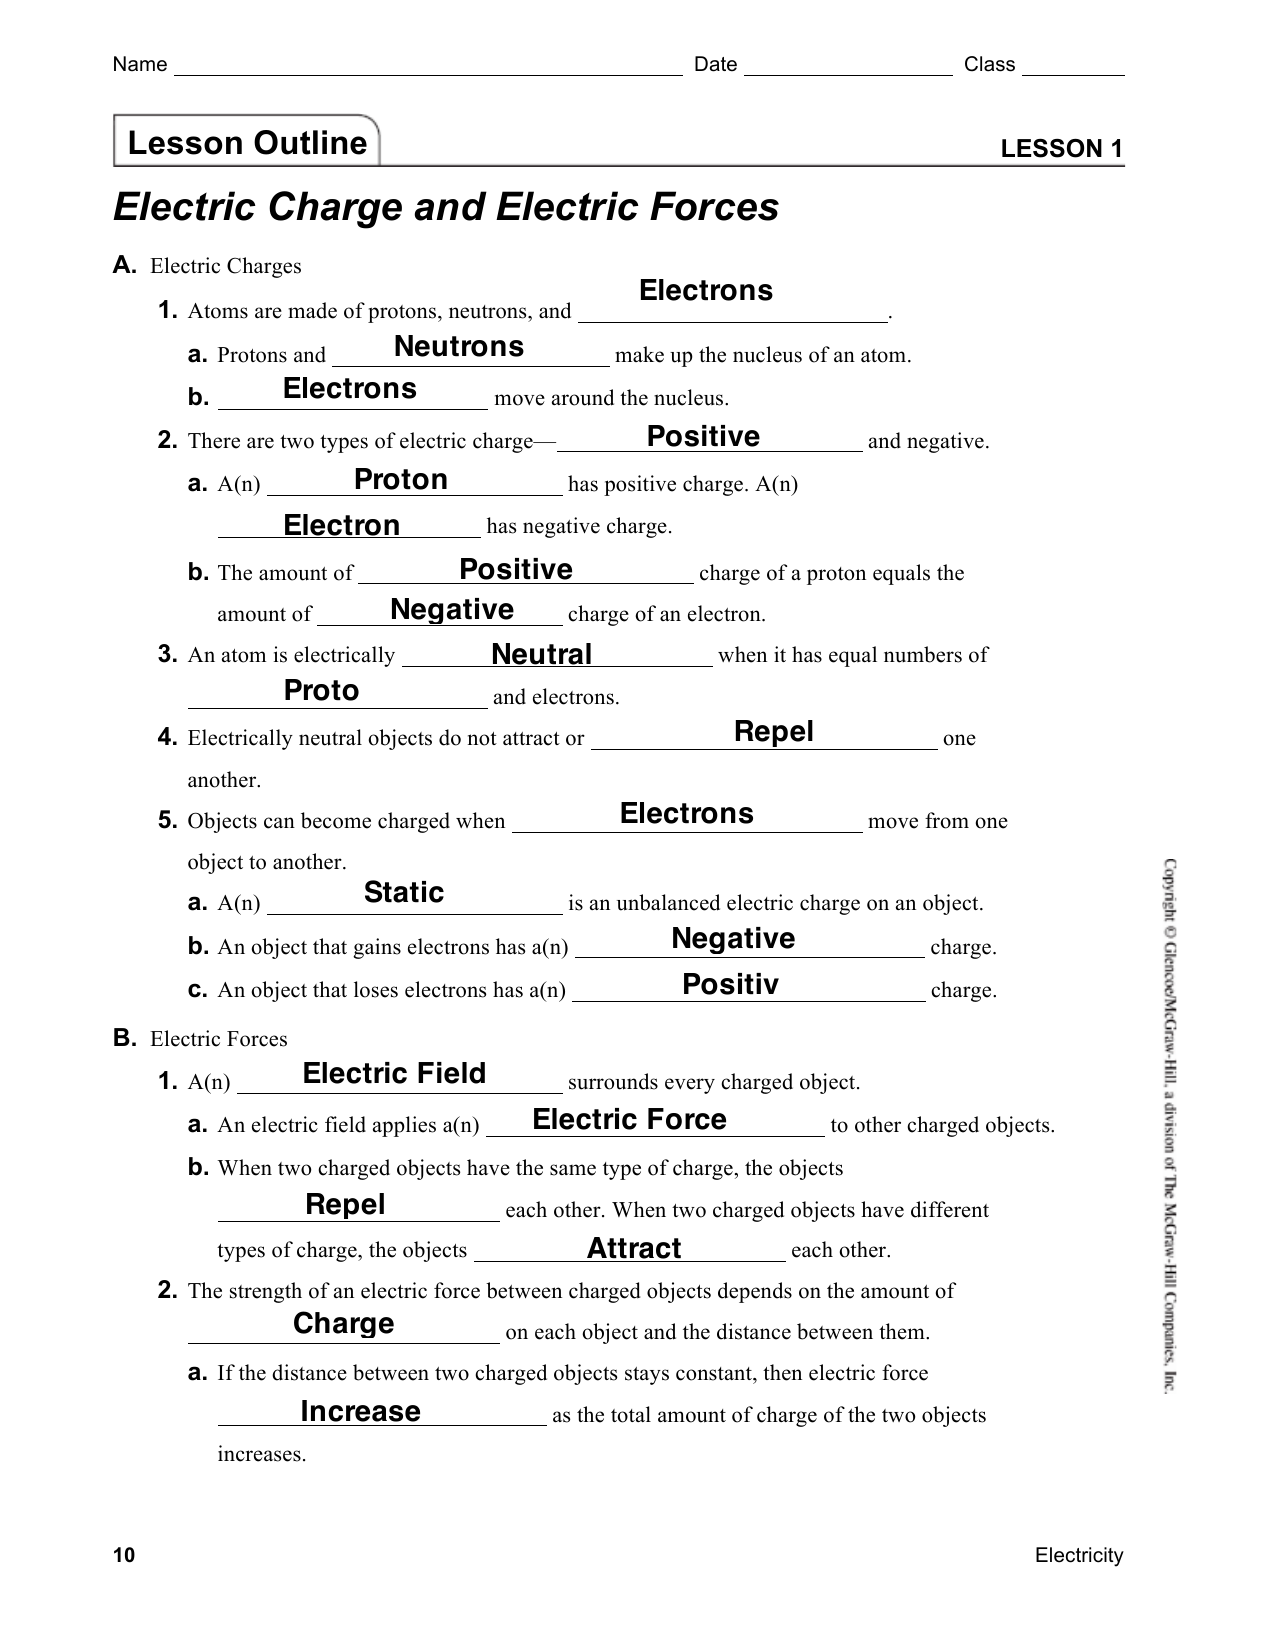 Electric Charges